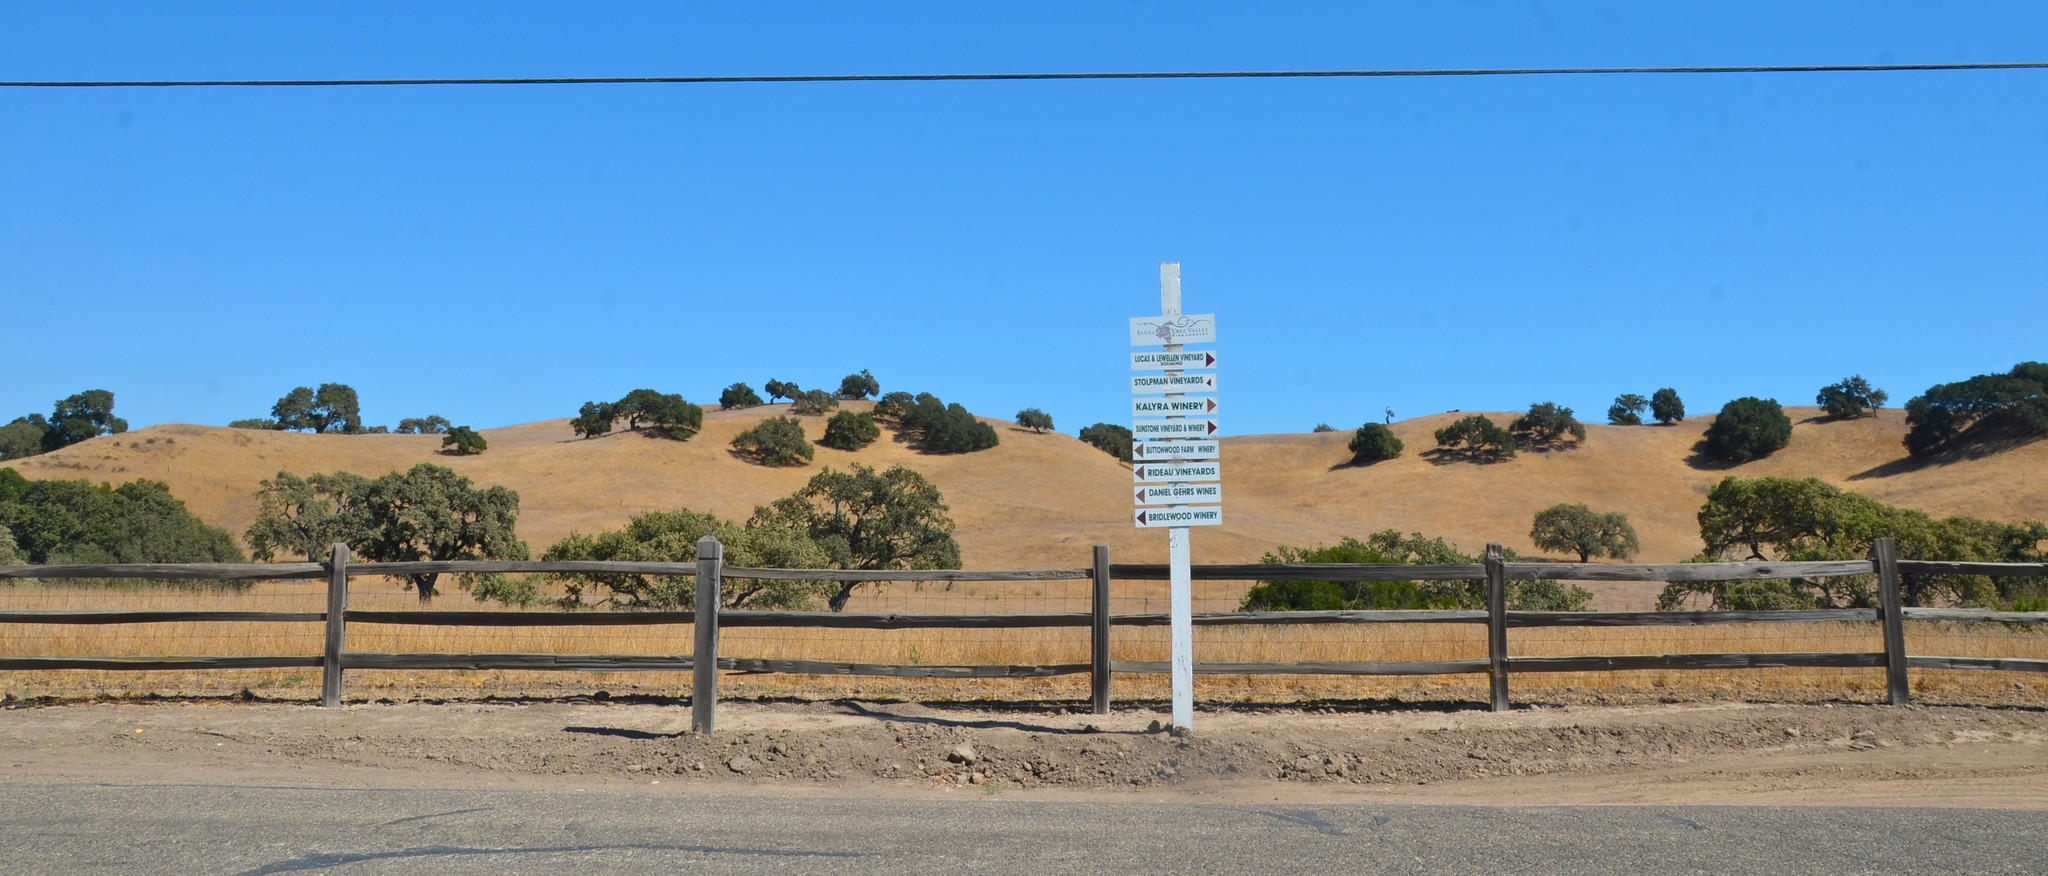 The hills are scattered with oaks along Ballard Canyon Road, just outside Los Olivos in Santa Barbara County wine country. As the sign in the foreground suggests, the area is full of vineyards, wineries and tasting rooms. Photo taken in 2012.